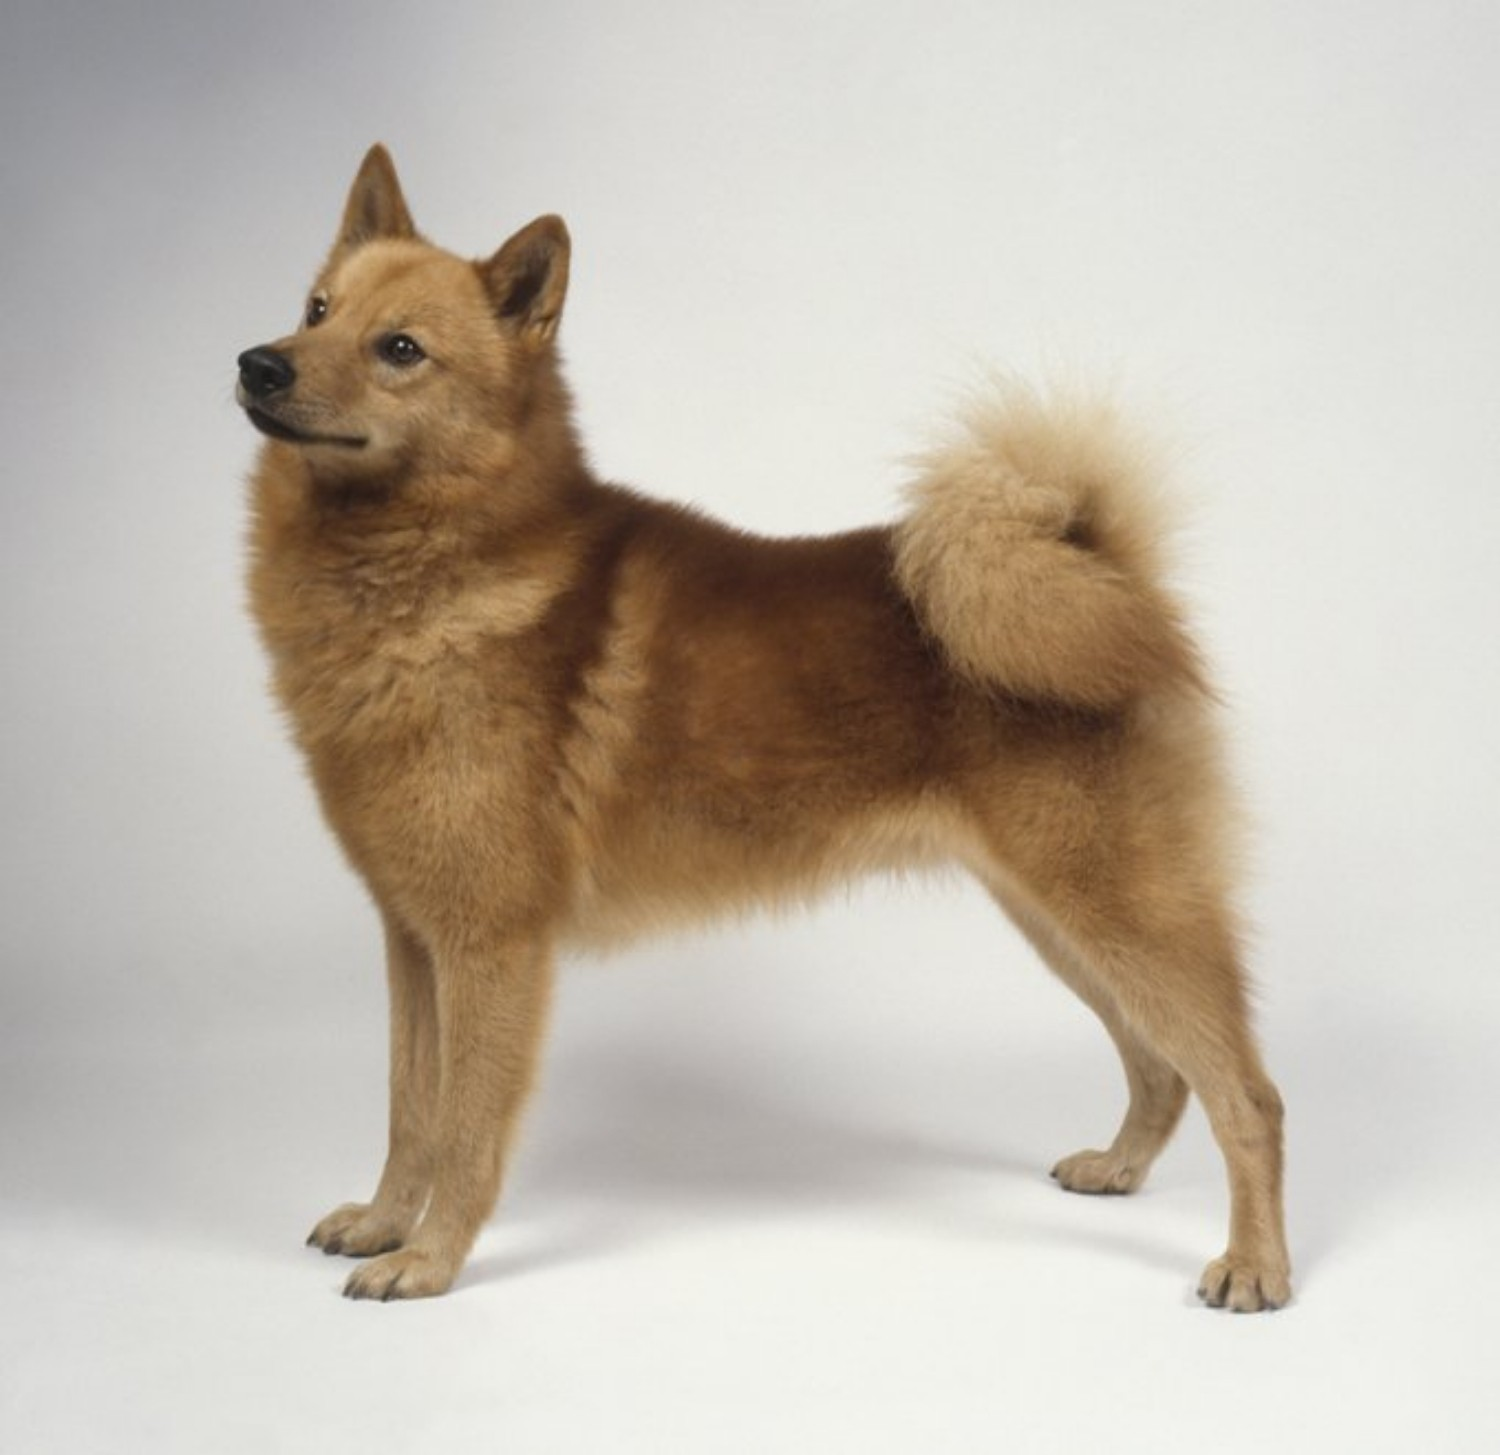 Finnish Spitz Vs Poodle Breed